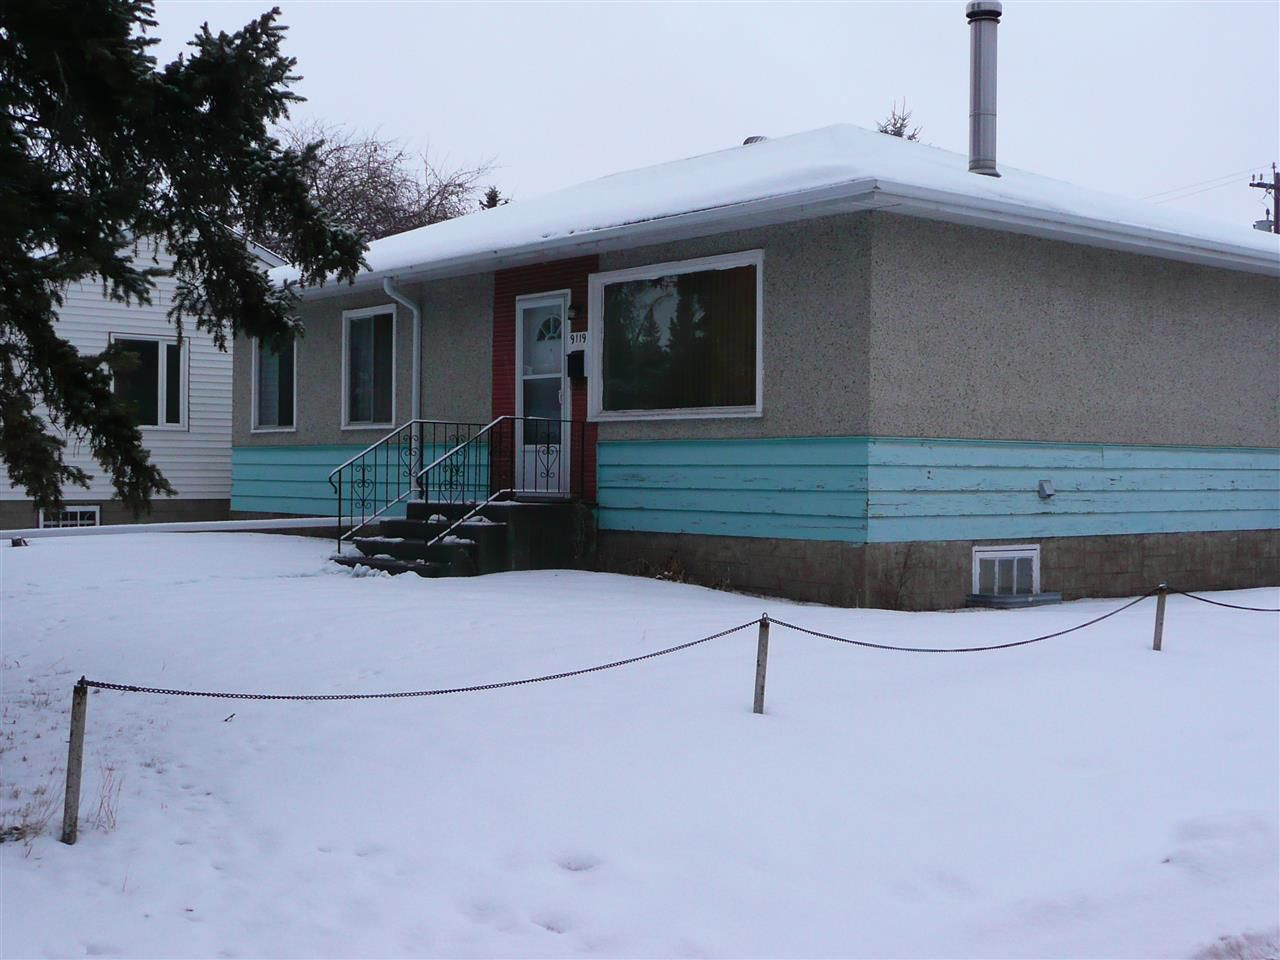 Main Photo: 9119 76 Street in Edmonton: Zone 18 House for sale : MLS®# E4165089